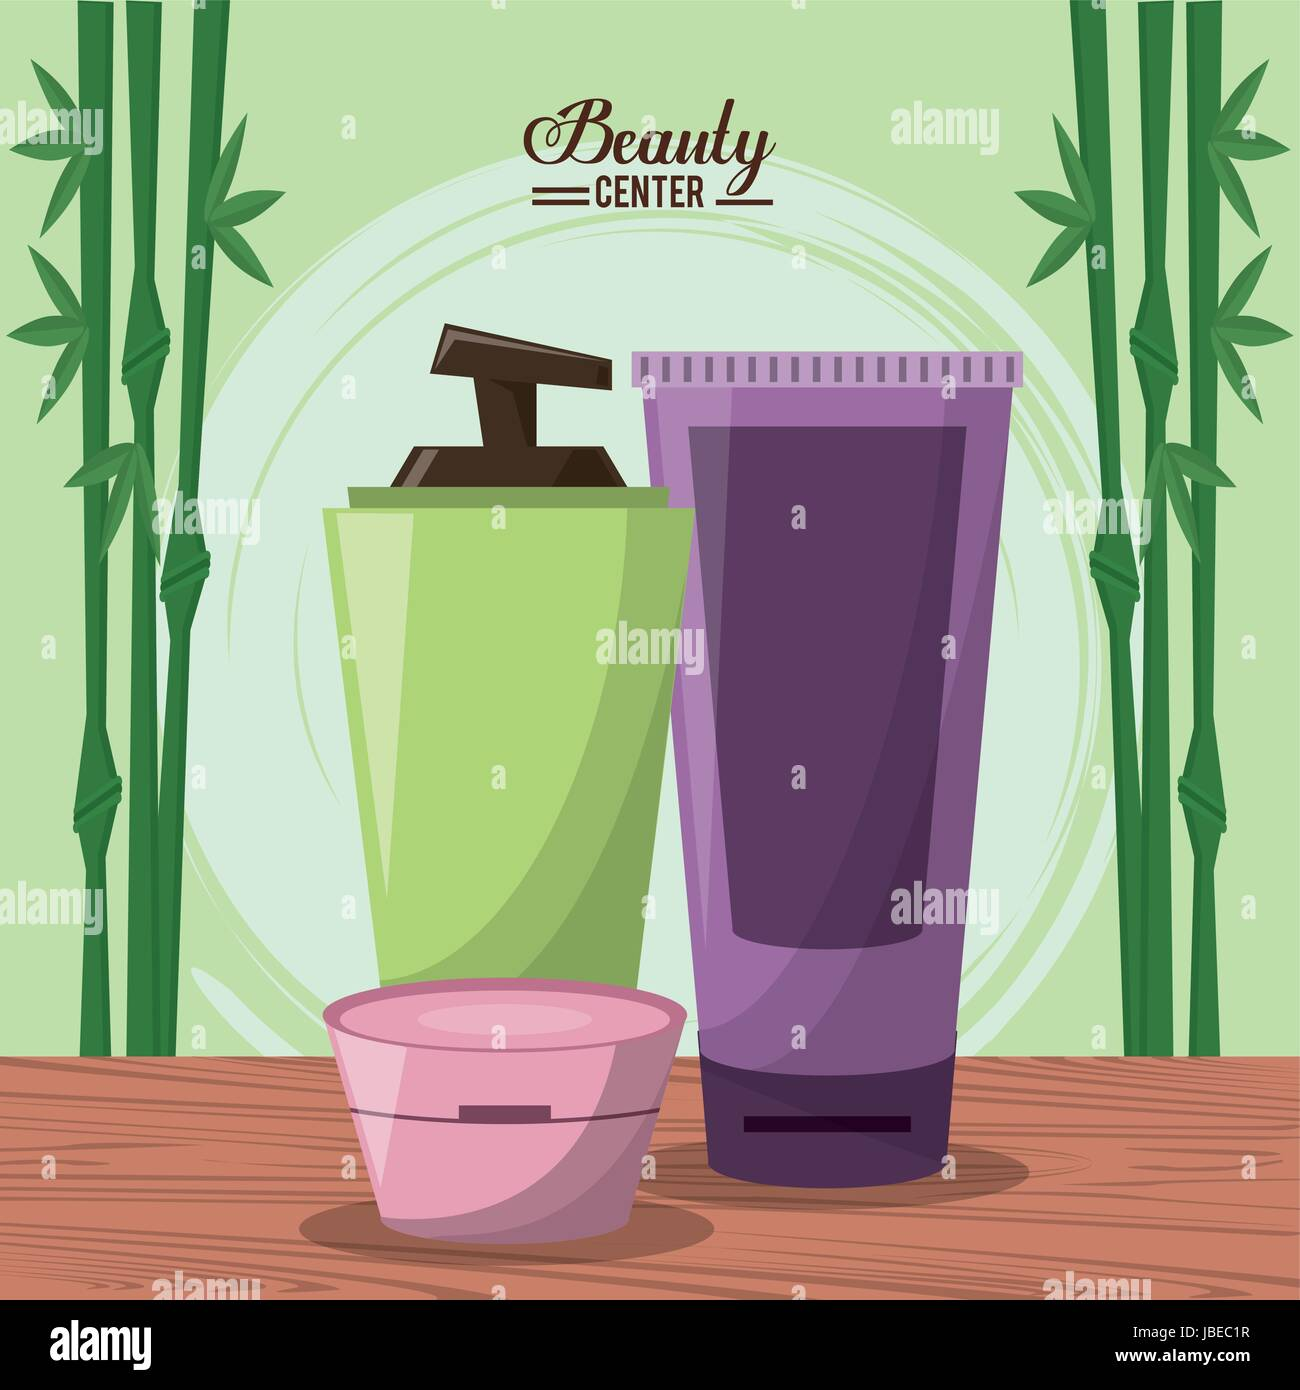 color poster of beauty center with bamboo plant and kit of ... on purple silver plant, purple blossom plant, purple eucalyptus plant, purple moss plant, purple red plant, purple rosemary plant, purple blue plant, purple holly plant, purple tulip plant, purple peppermint plant, purple parasol plant, purple jade plant, purple vanilla plant, purple opium plant, purple citronella plant, purple kiwi plant, purple pagoda plant, purple juniper plant, purple dandelion plant, purple freesia plant,